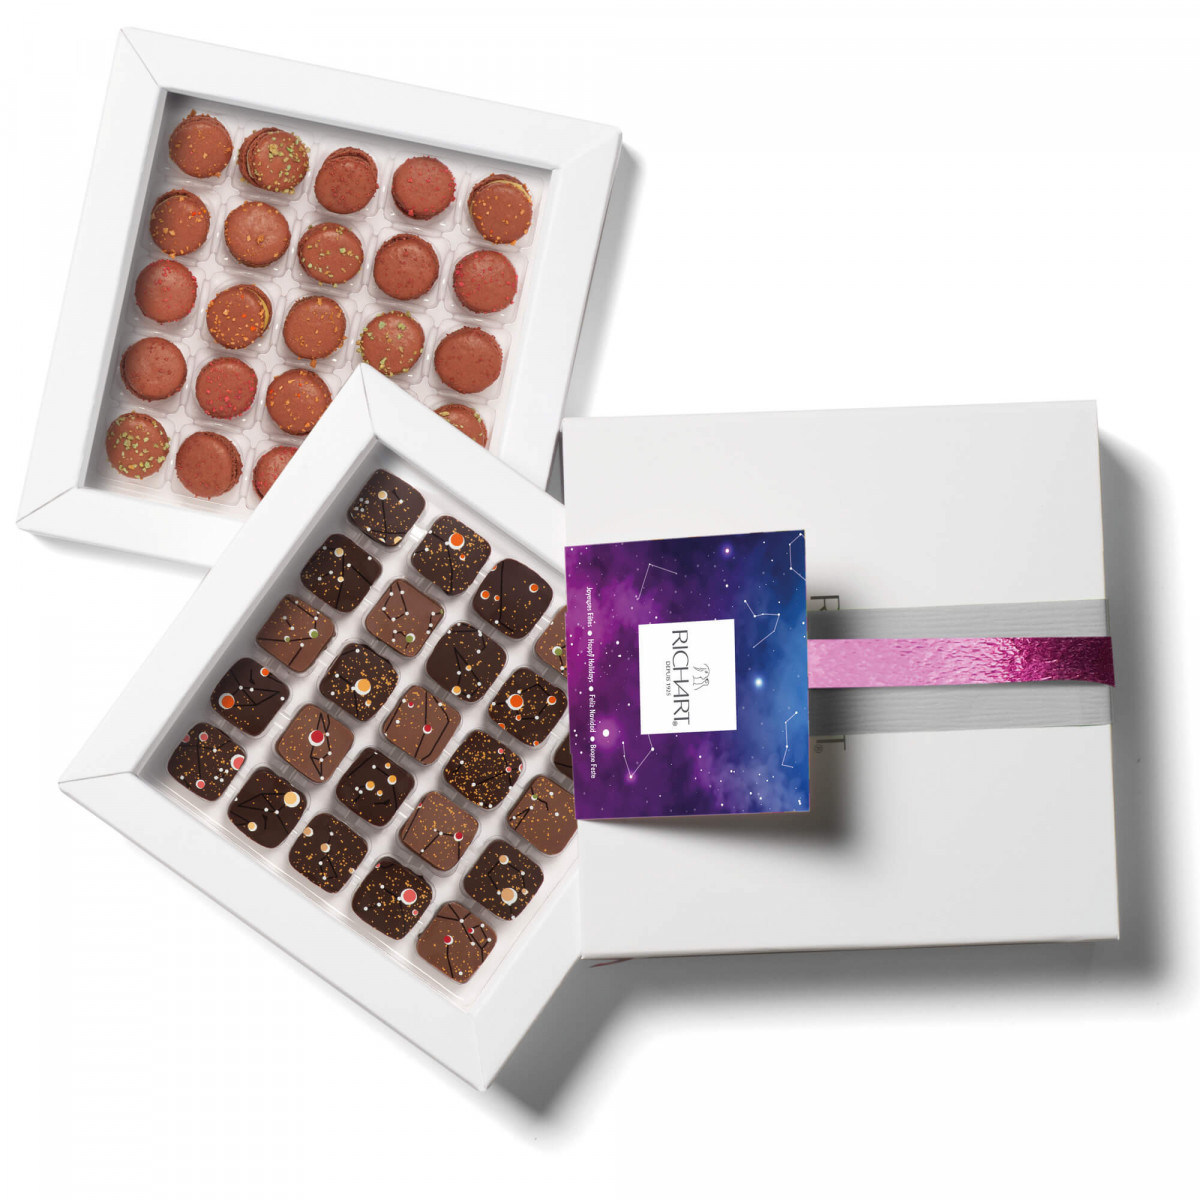 Constellations célestes coffret chocolats et mini macarons